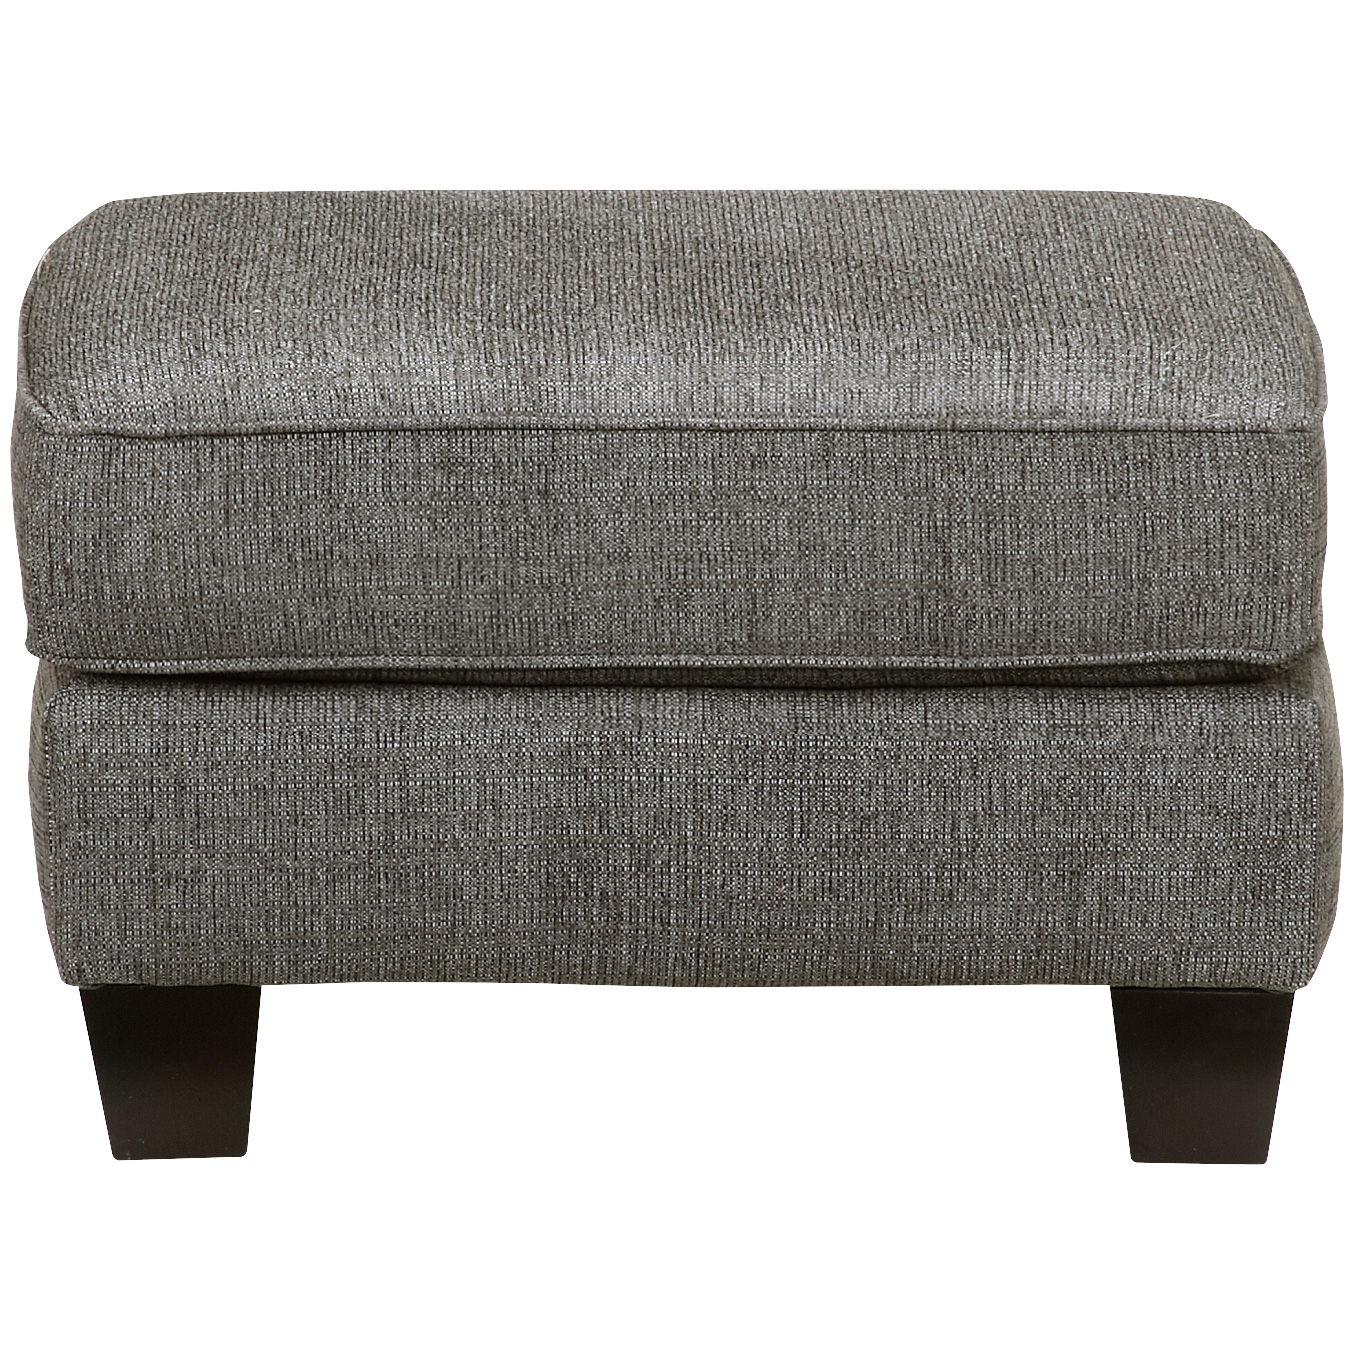 Dimensions By England | York Granite Ottoman